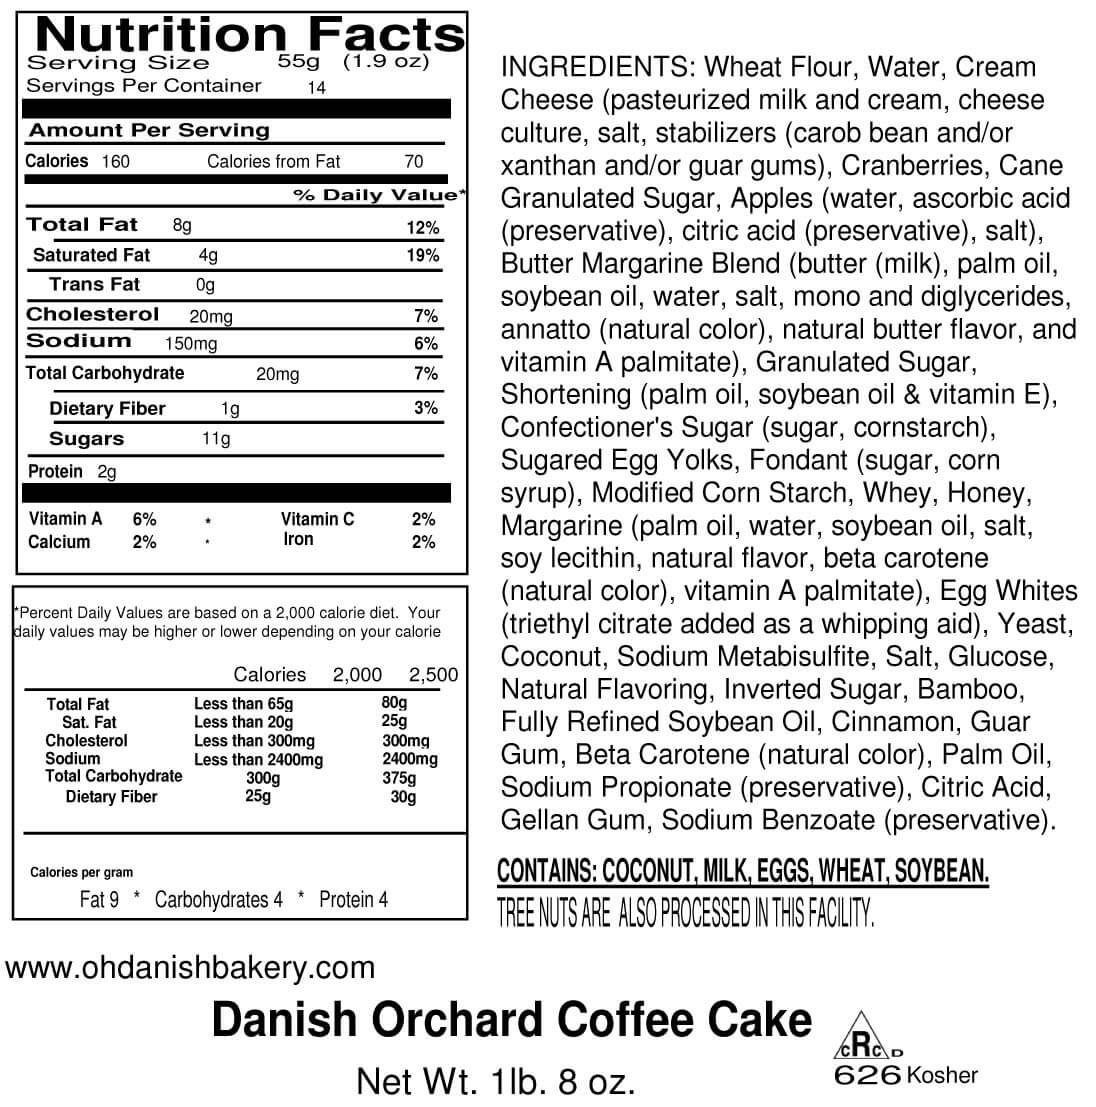 Nutritional Label for Danish Orchard Coffee Cake